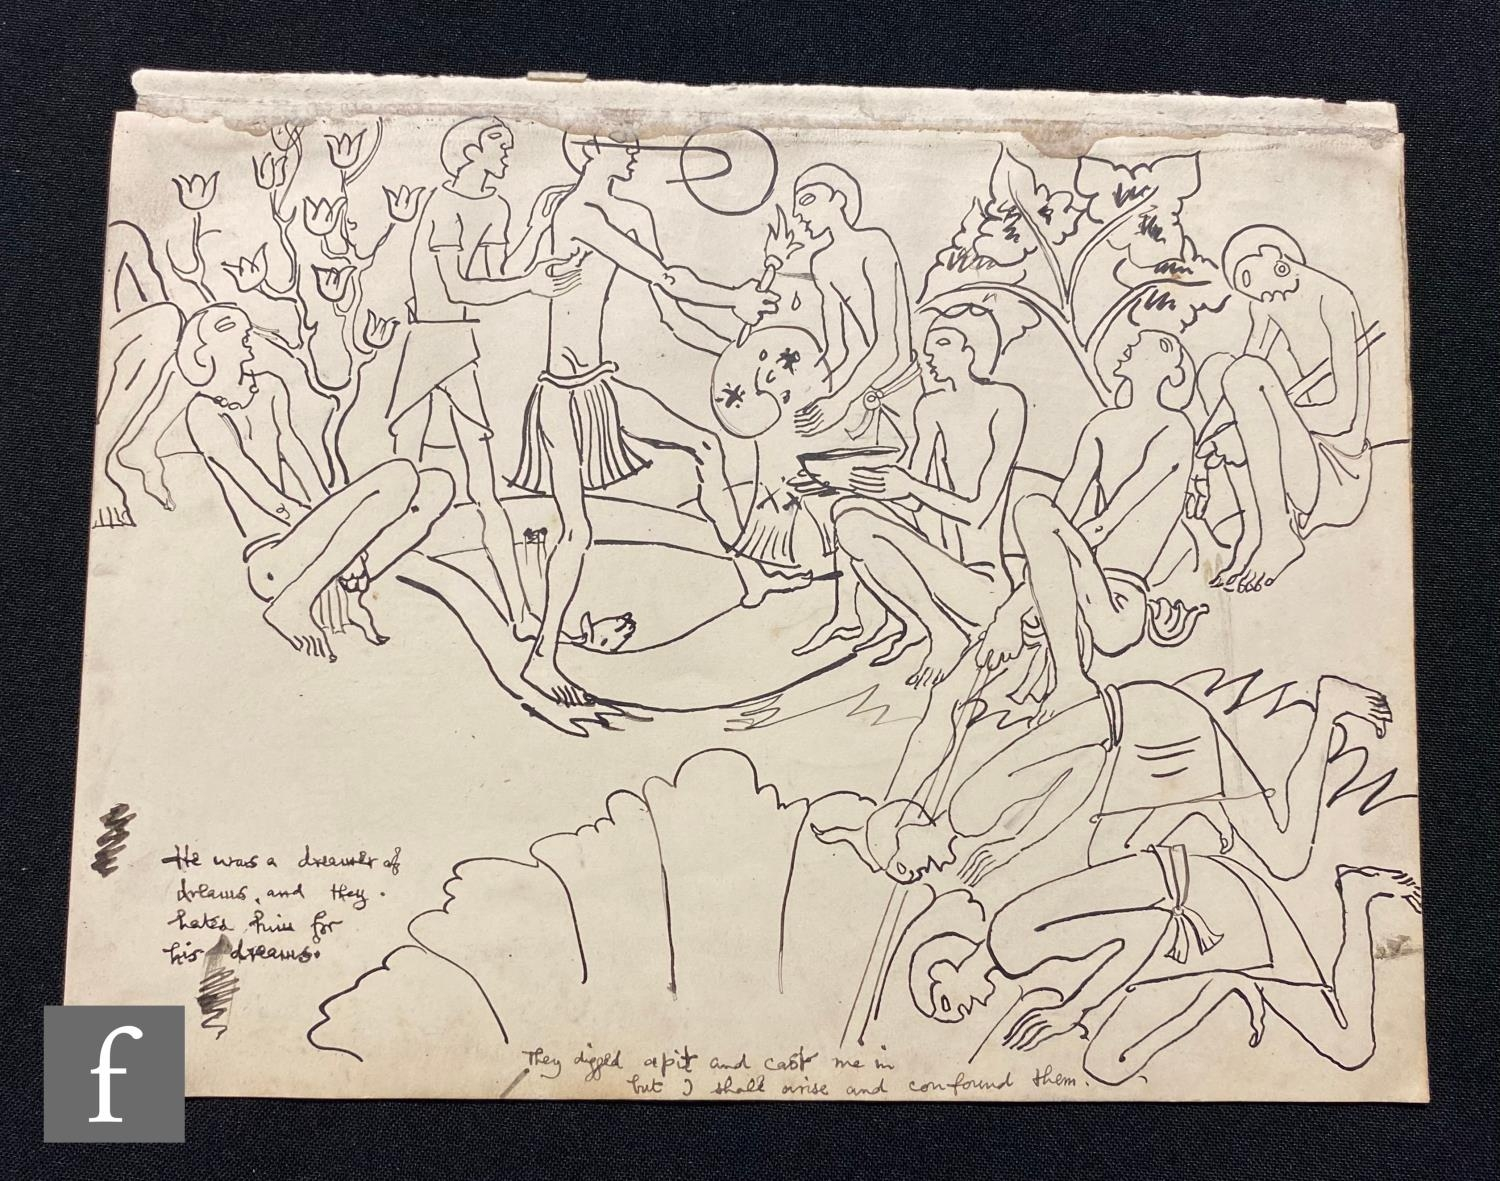 ALBERT WAINWRIGHT (1898-1943) - A sketch depicting boy scouts in various poses, to the reverse a - Image 2 of 2